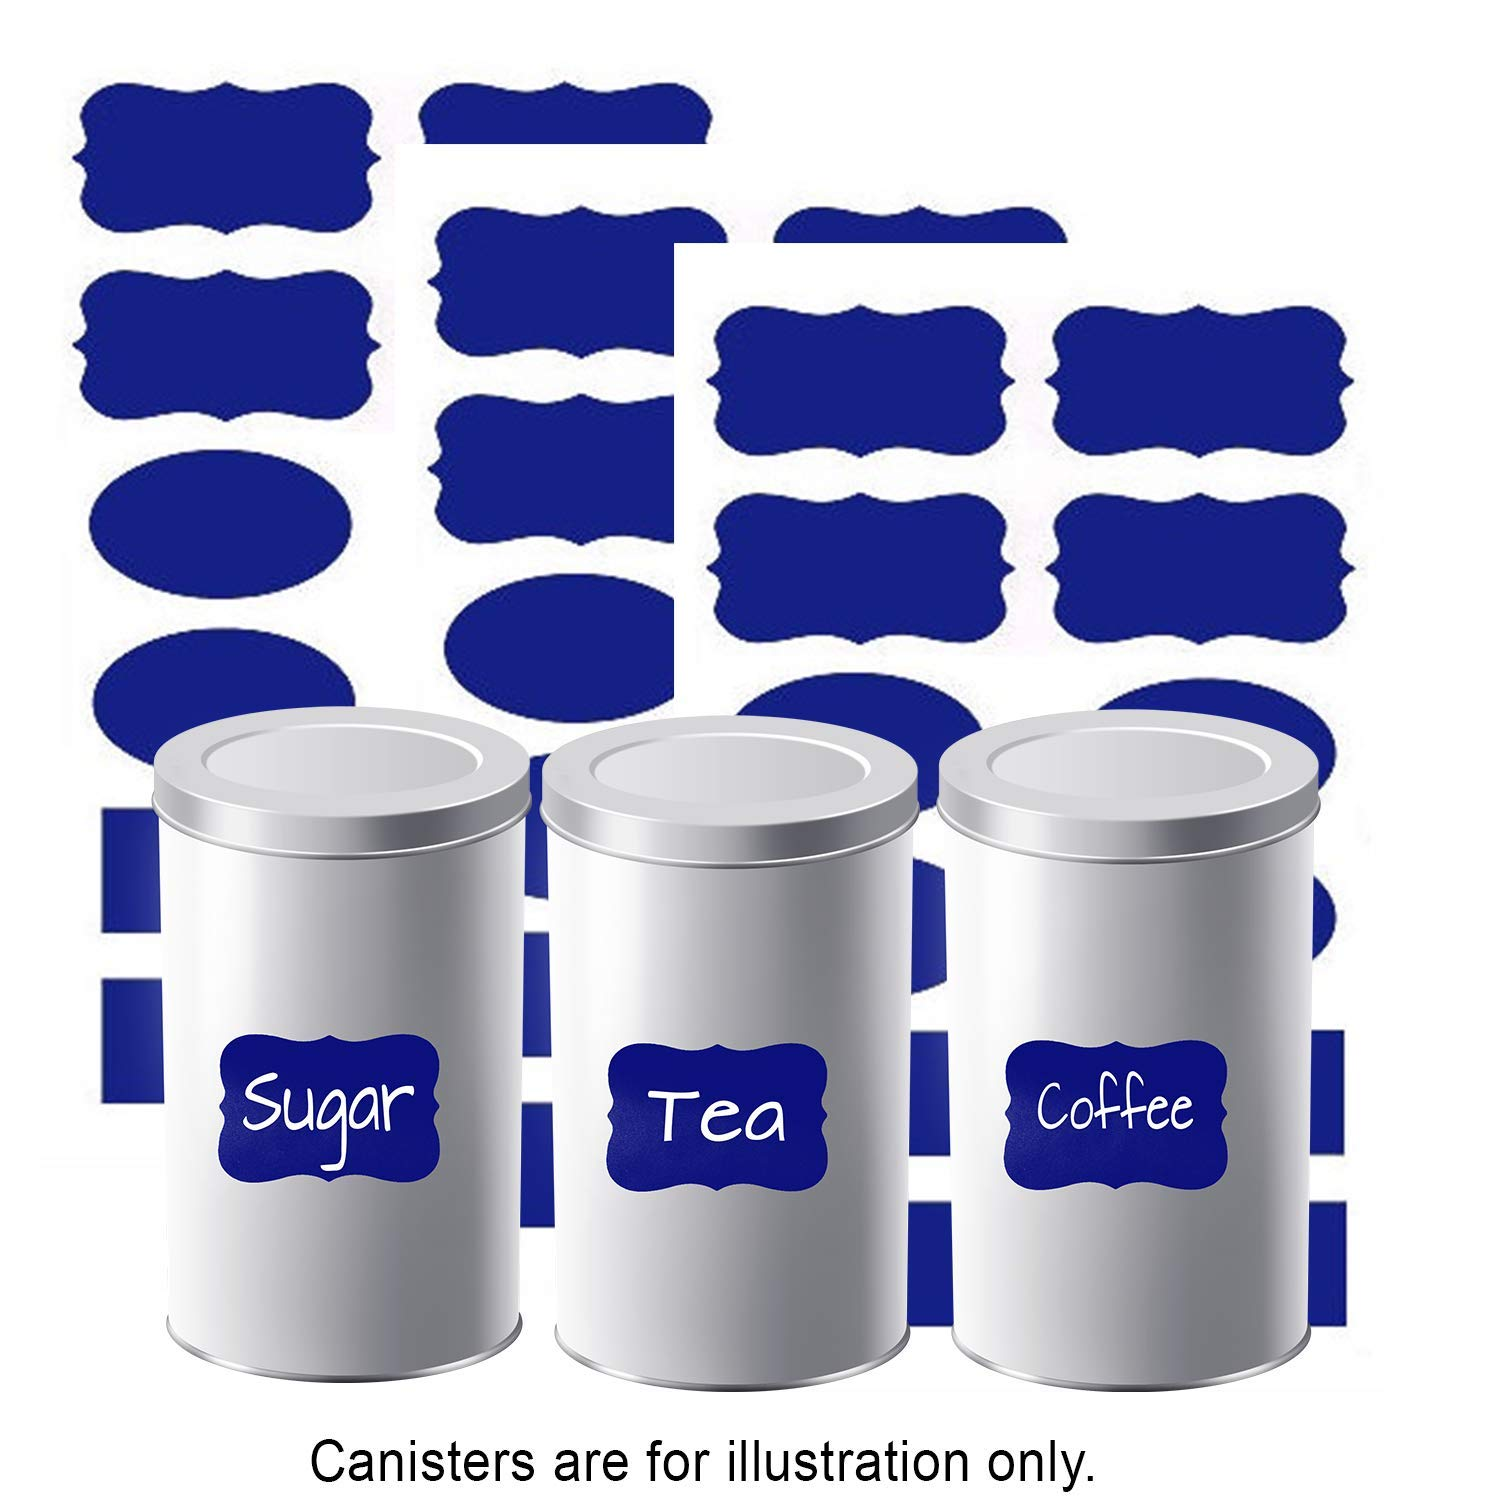 Blue Chalkboard Labels Vibrant Color Kitchen Organization of Bins/Boxes/Spice Jars/Containers Erasable Reusable Black Board Vinly Label Waterproof Adhesive Stickers Decal Craft Gift, 36 Piece by FIVESTARS (Image #2)